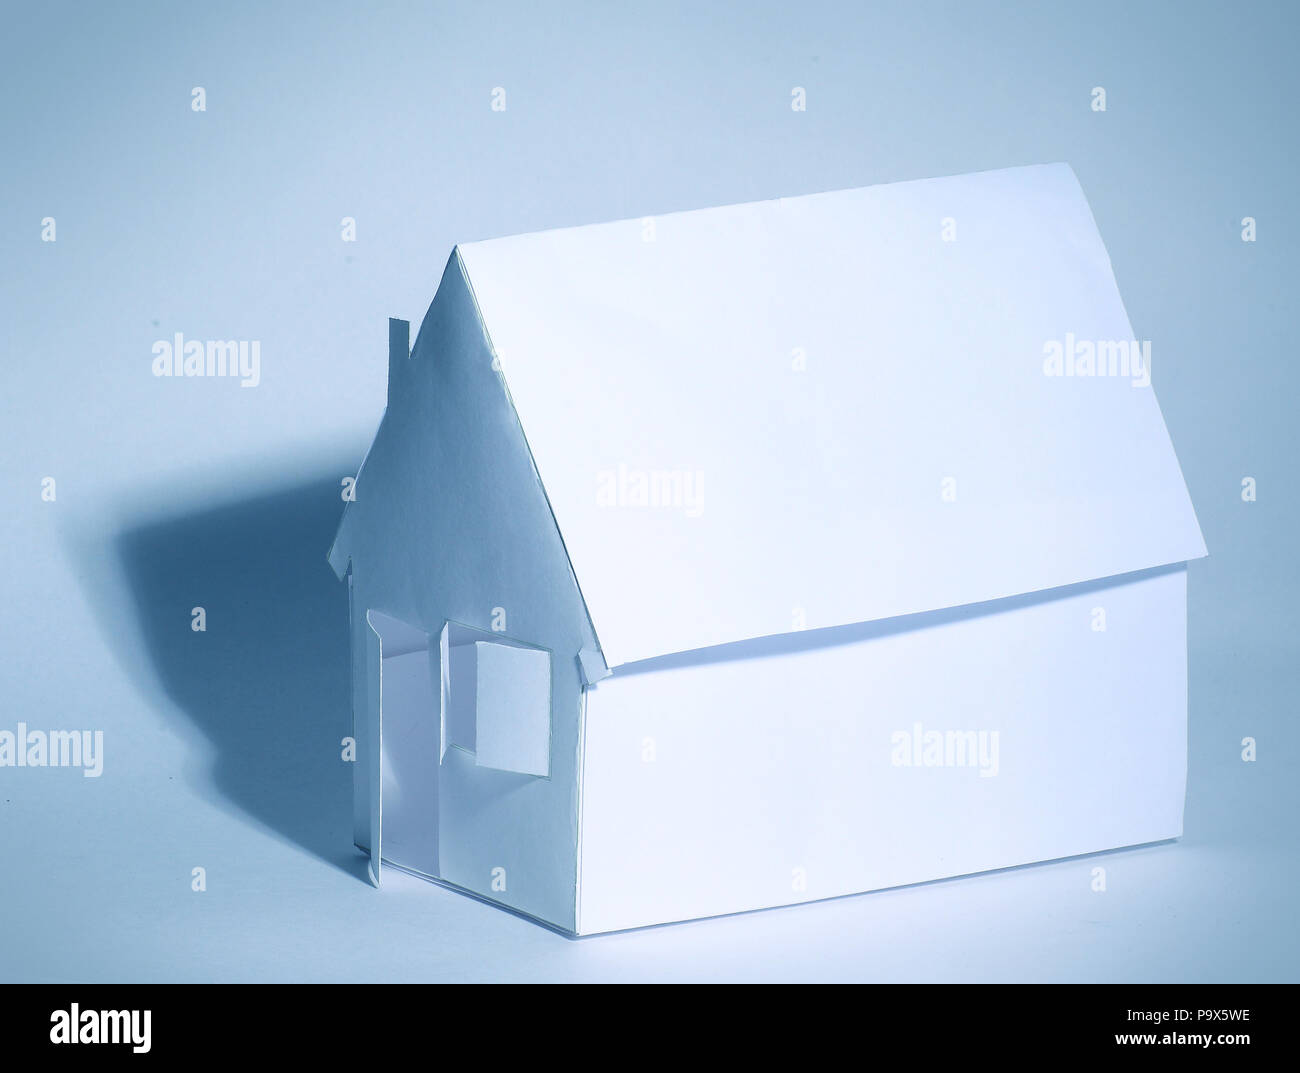 Paper house on a white background in cool colors - Stock Image